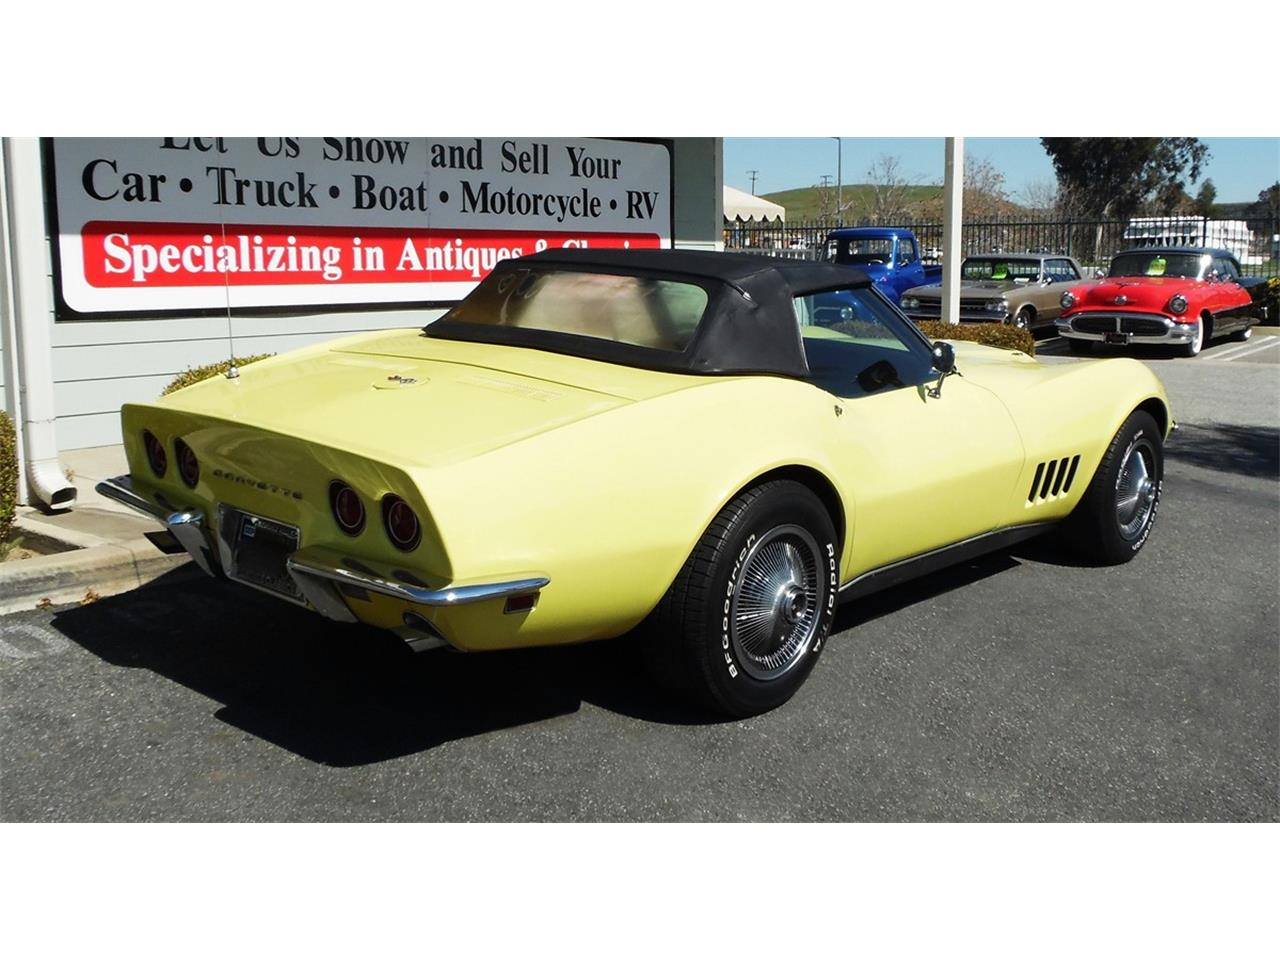 Large Picture of 1968 Chevrolet Corvette located in California - $49,995.00 - N606